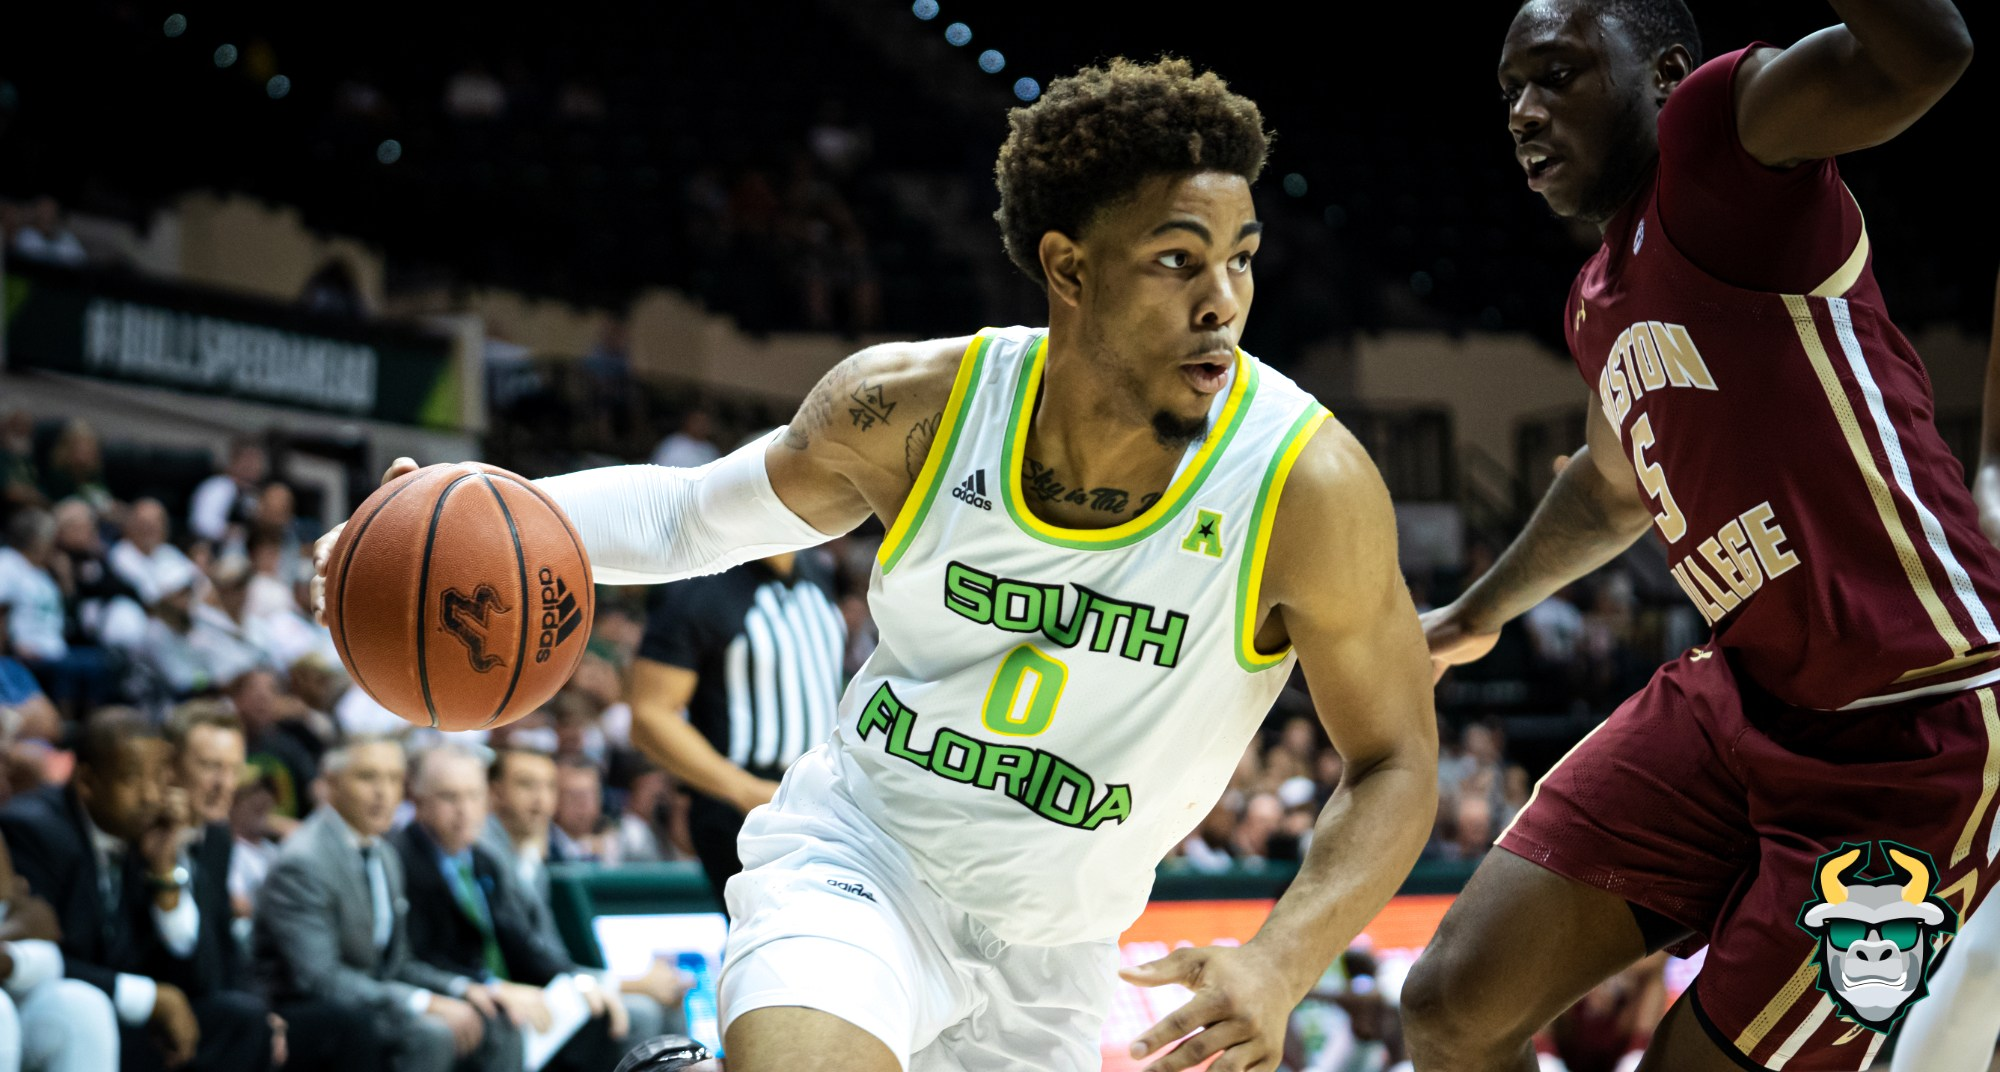 #SoFloDrip Boston College vs. South Florida Men's Basketball 2019 Photo Album ReCap - David Collins SoFloBulls.com